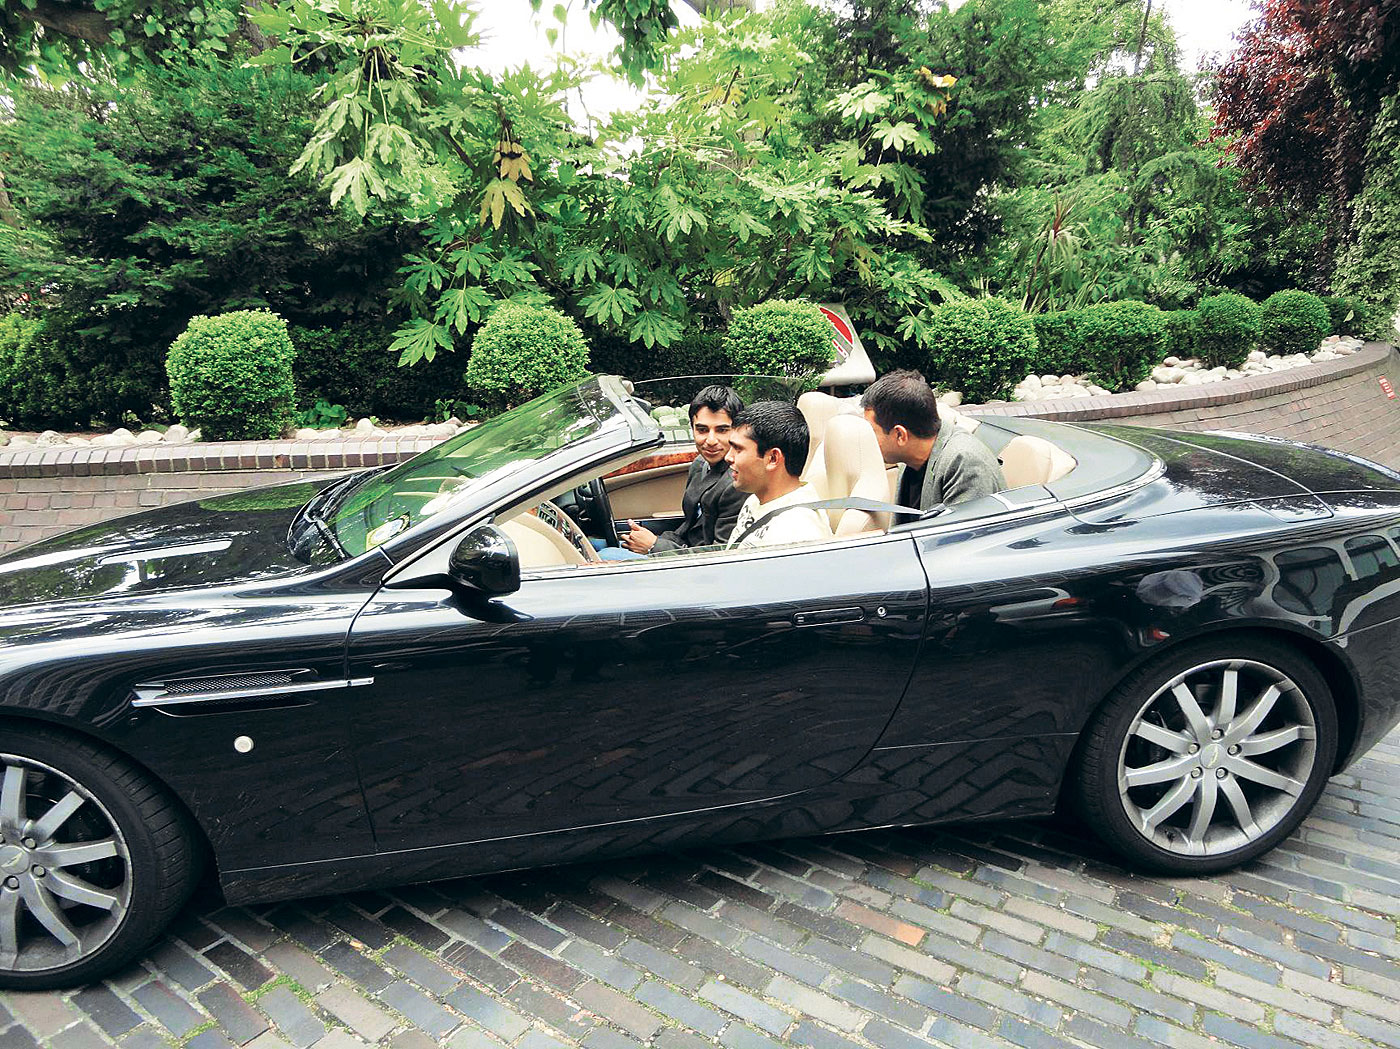 Live fast, fall young: Salman Butt gets behind the wheel of Majeed's Aston Martin in London